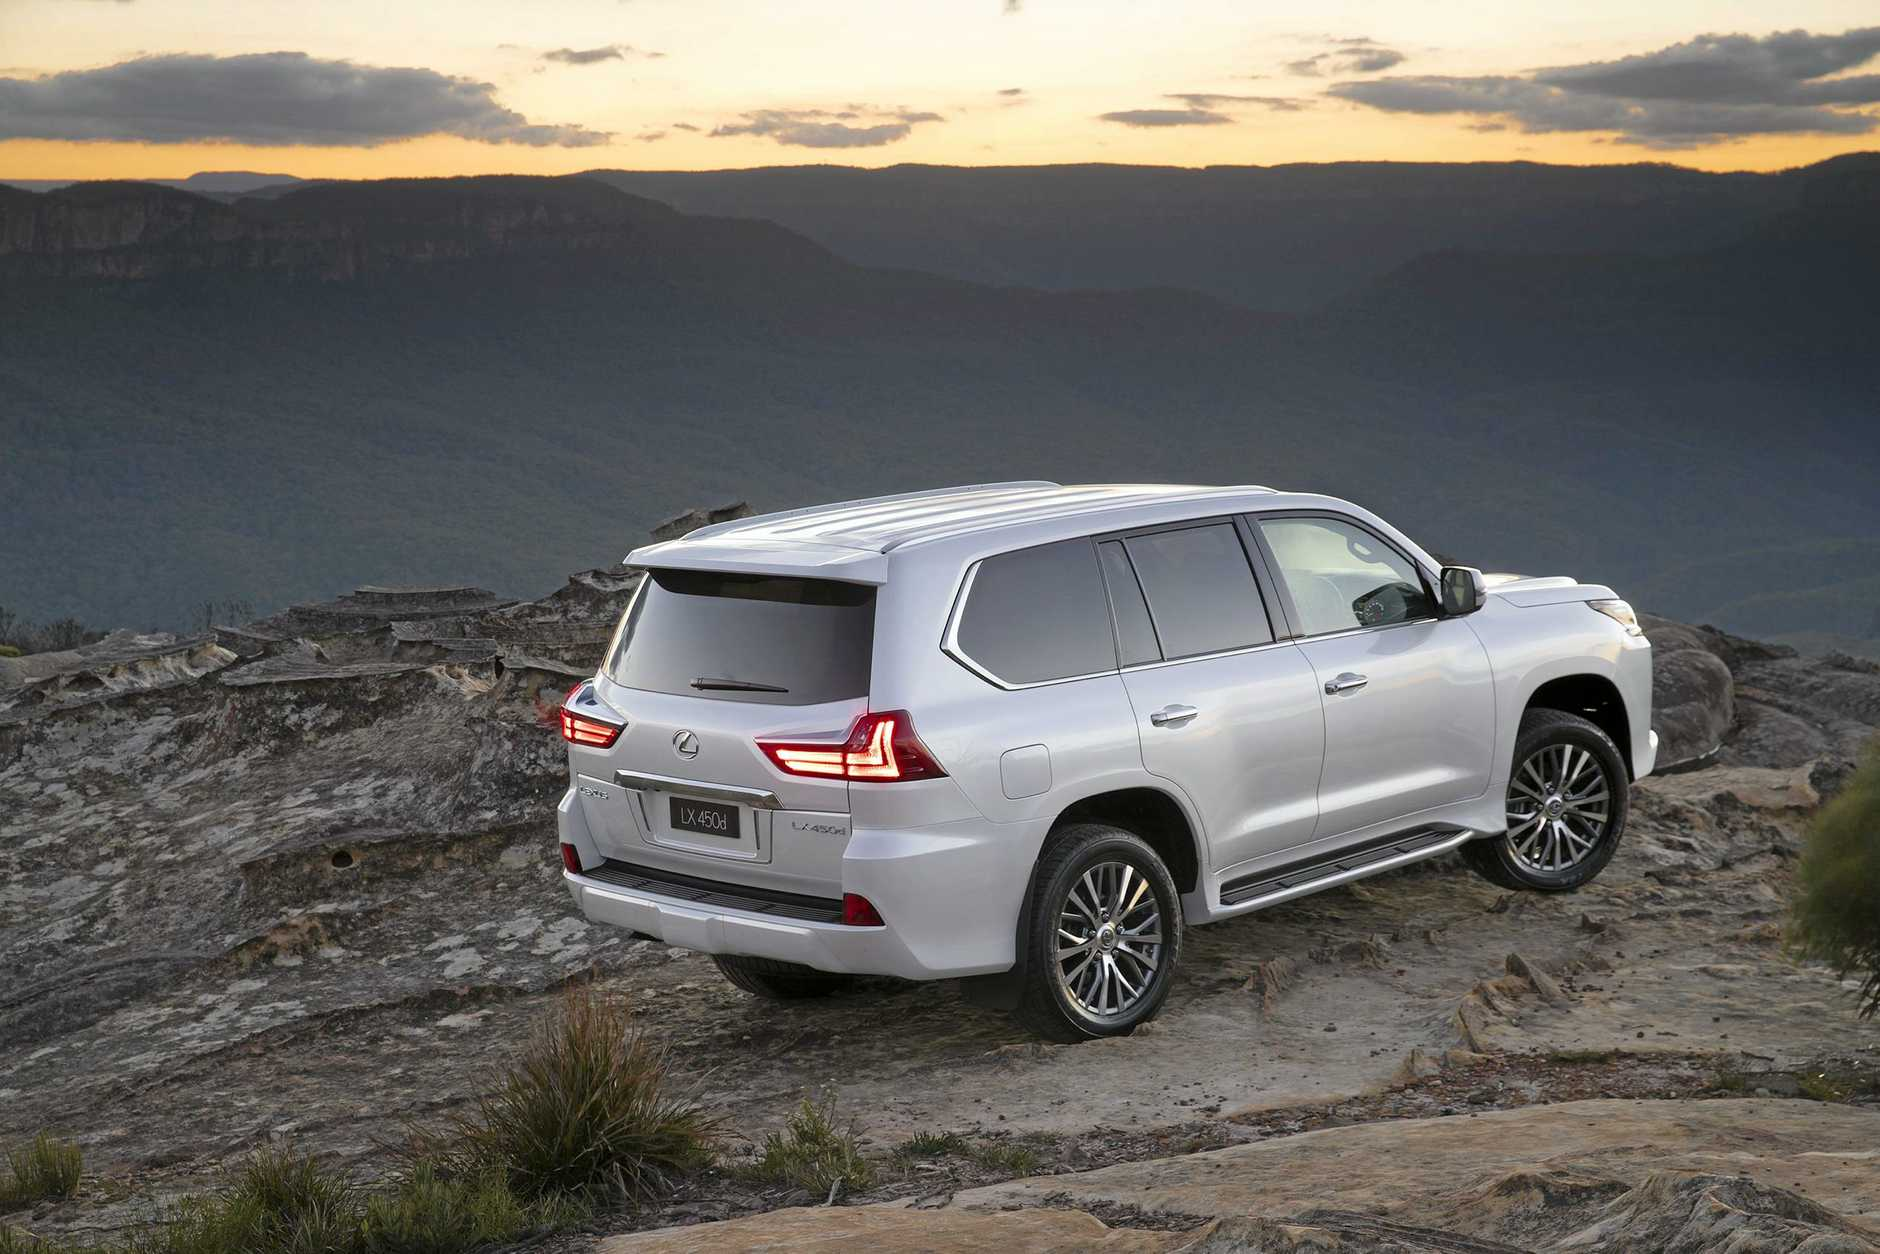 The hulking Lexus LX is now available with turbo-diesel power.